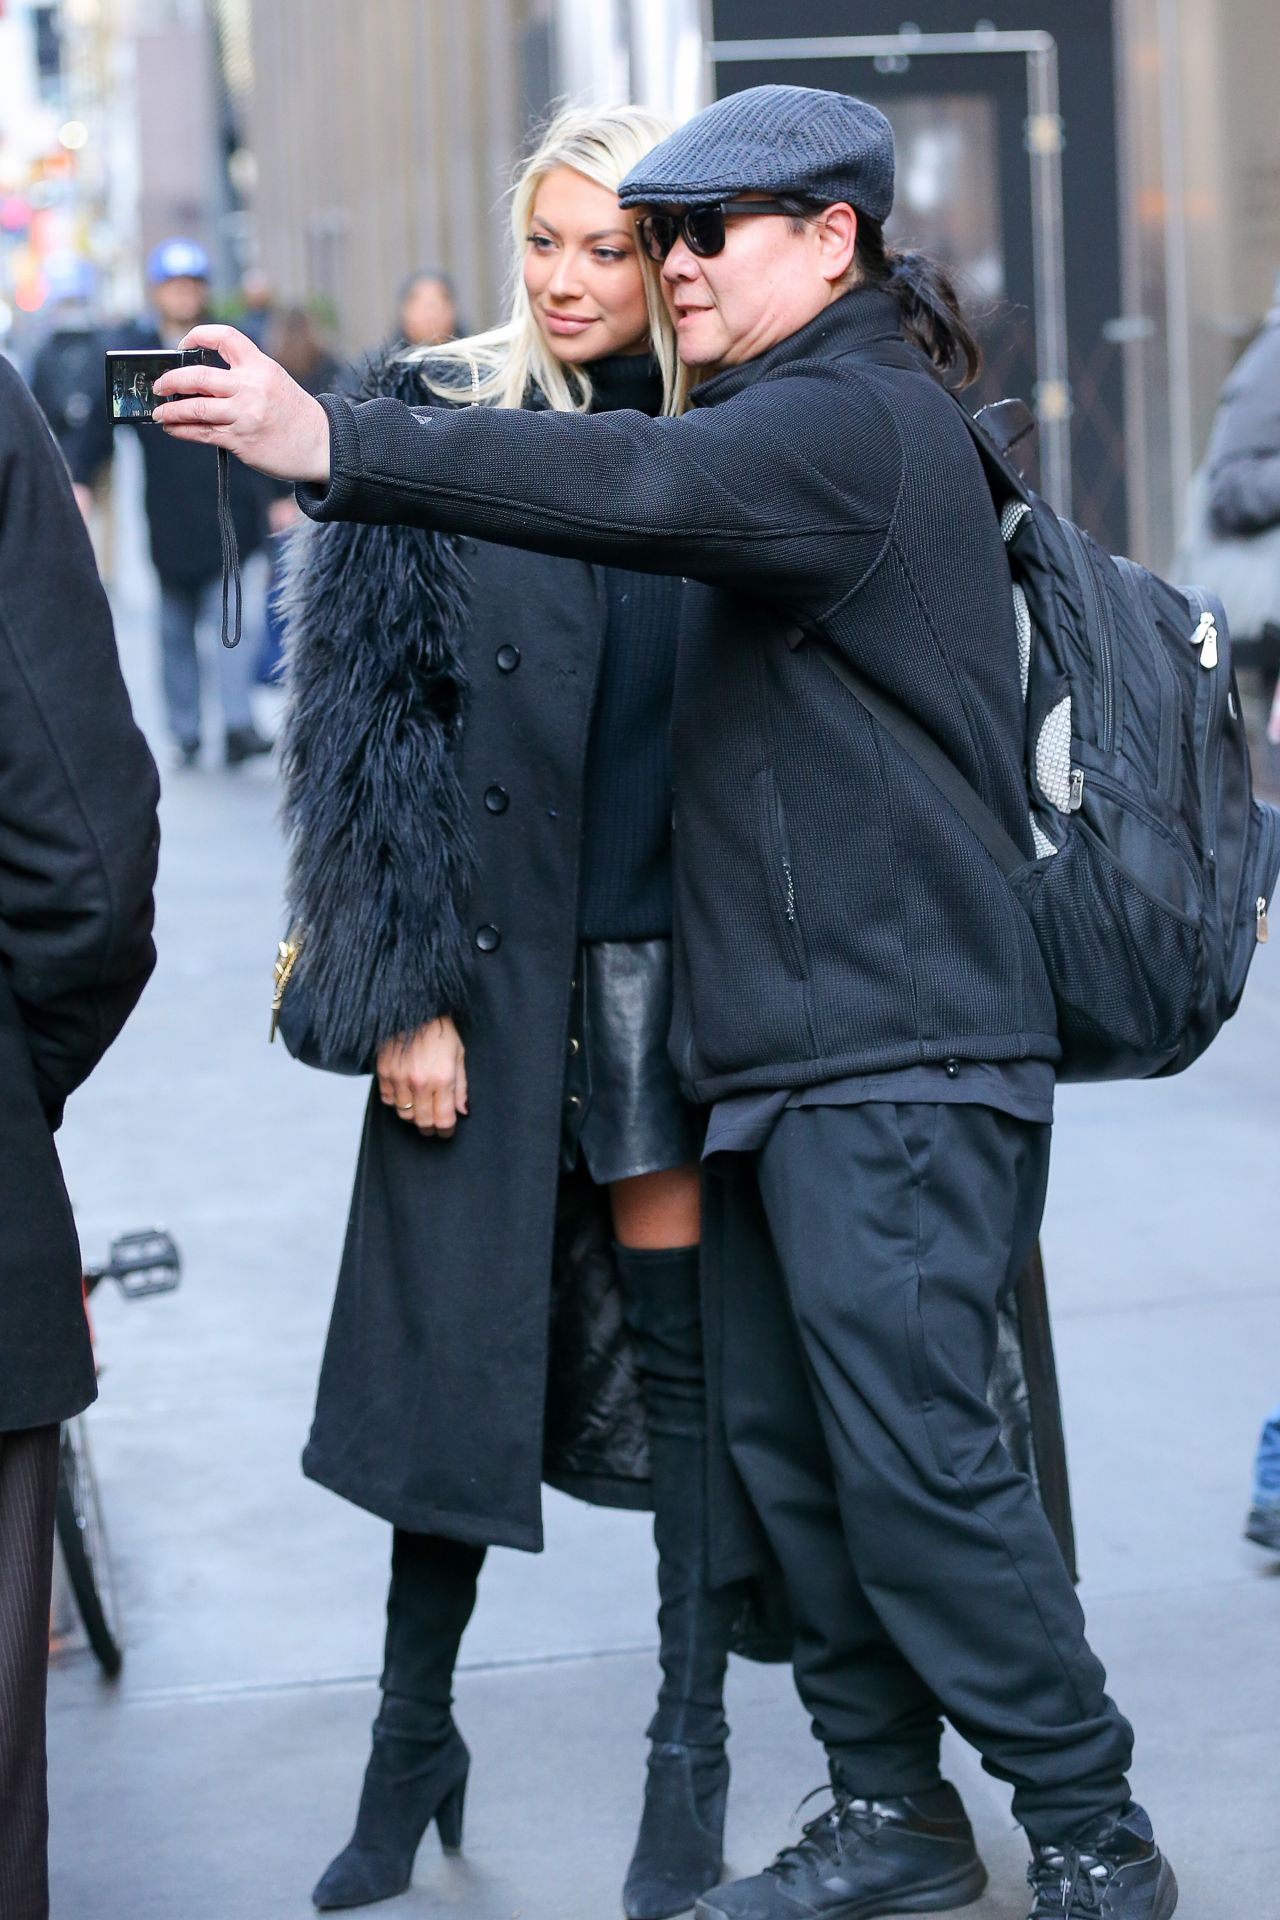 stassi-schroeder-wearing-a-black-stylish-outfit-as-leaving-siriusxm-radio-in-nyc-1-11-2017-2.jpg